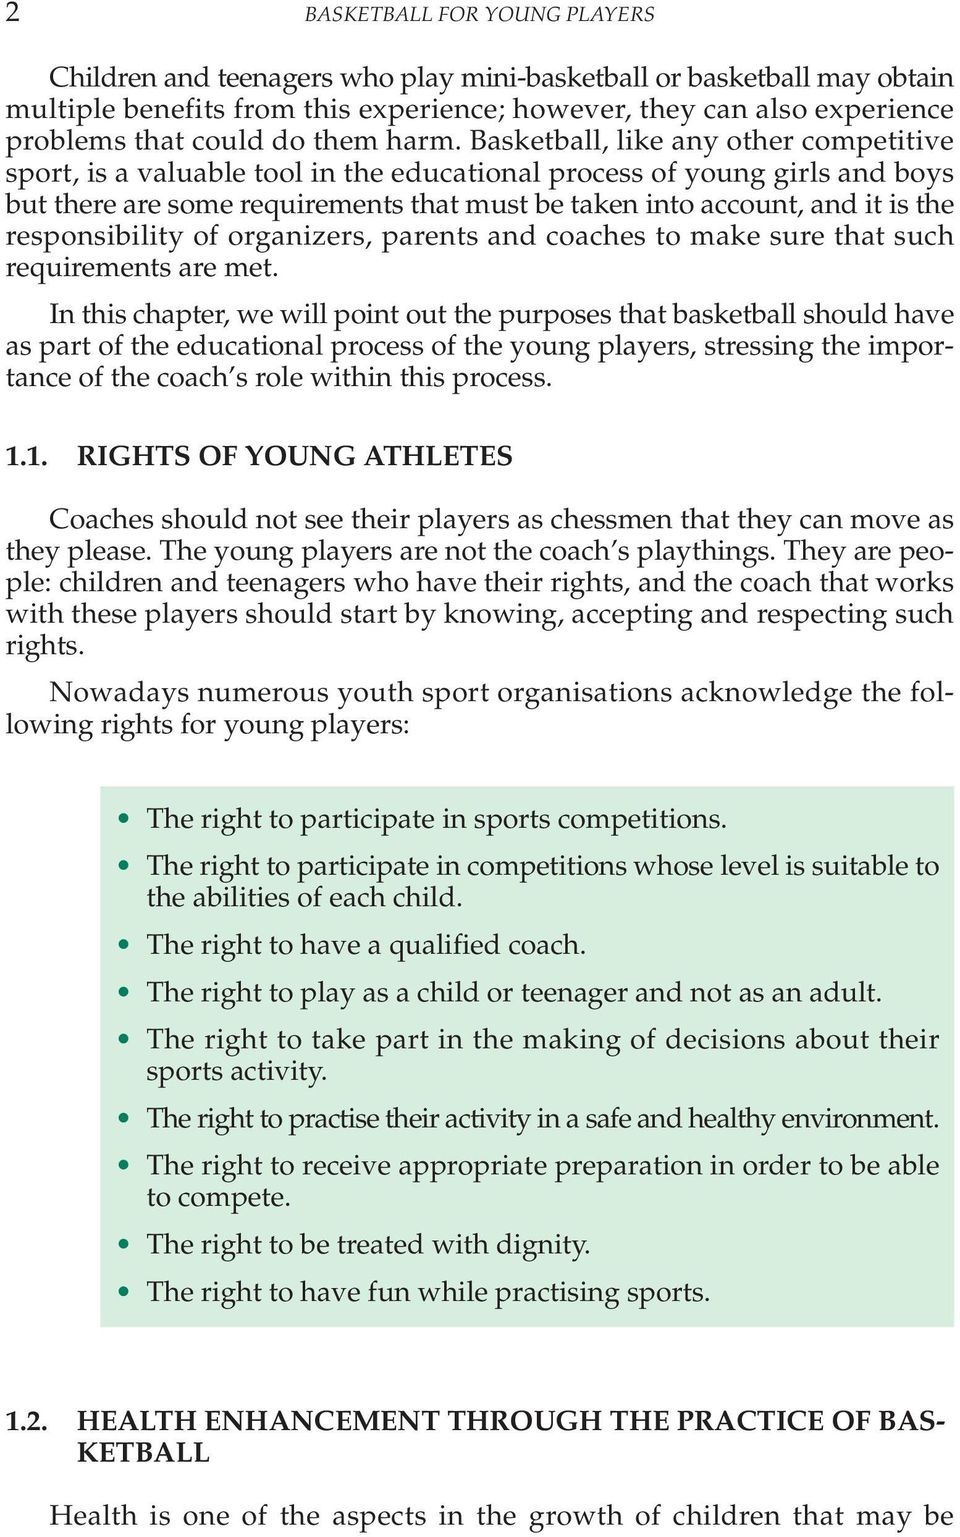 Basketball, like any other competitive sport, is a valuable tool in the educational process of young girls and boys but there are some requirements that must be taken into account, and it is the